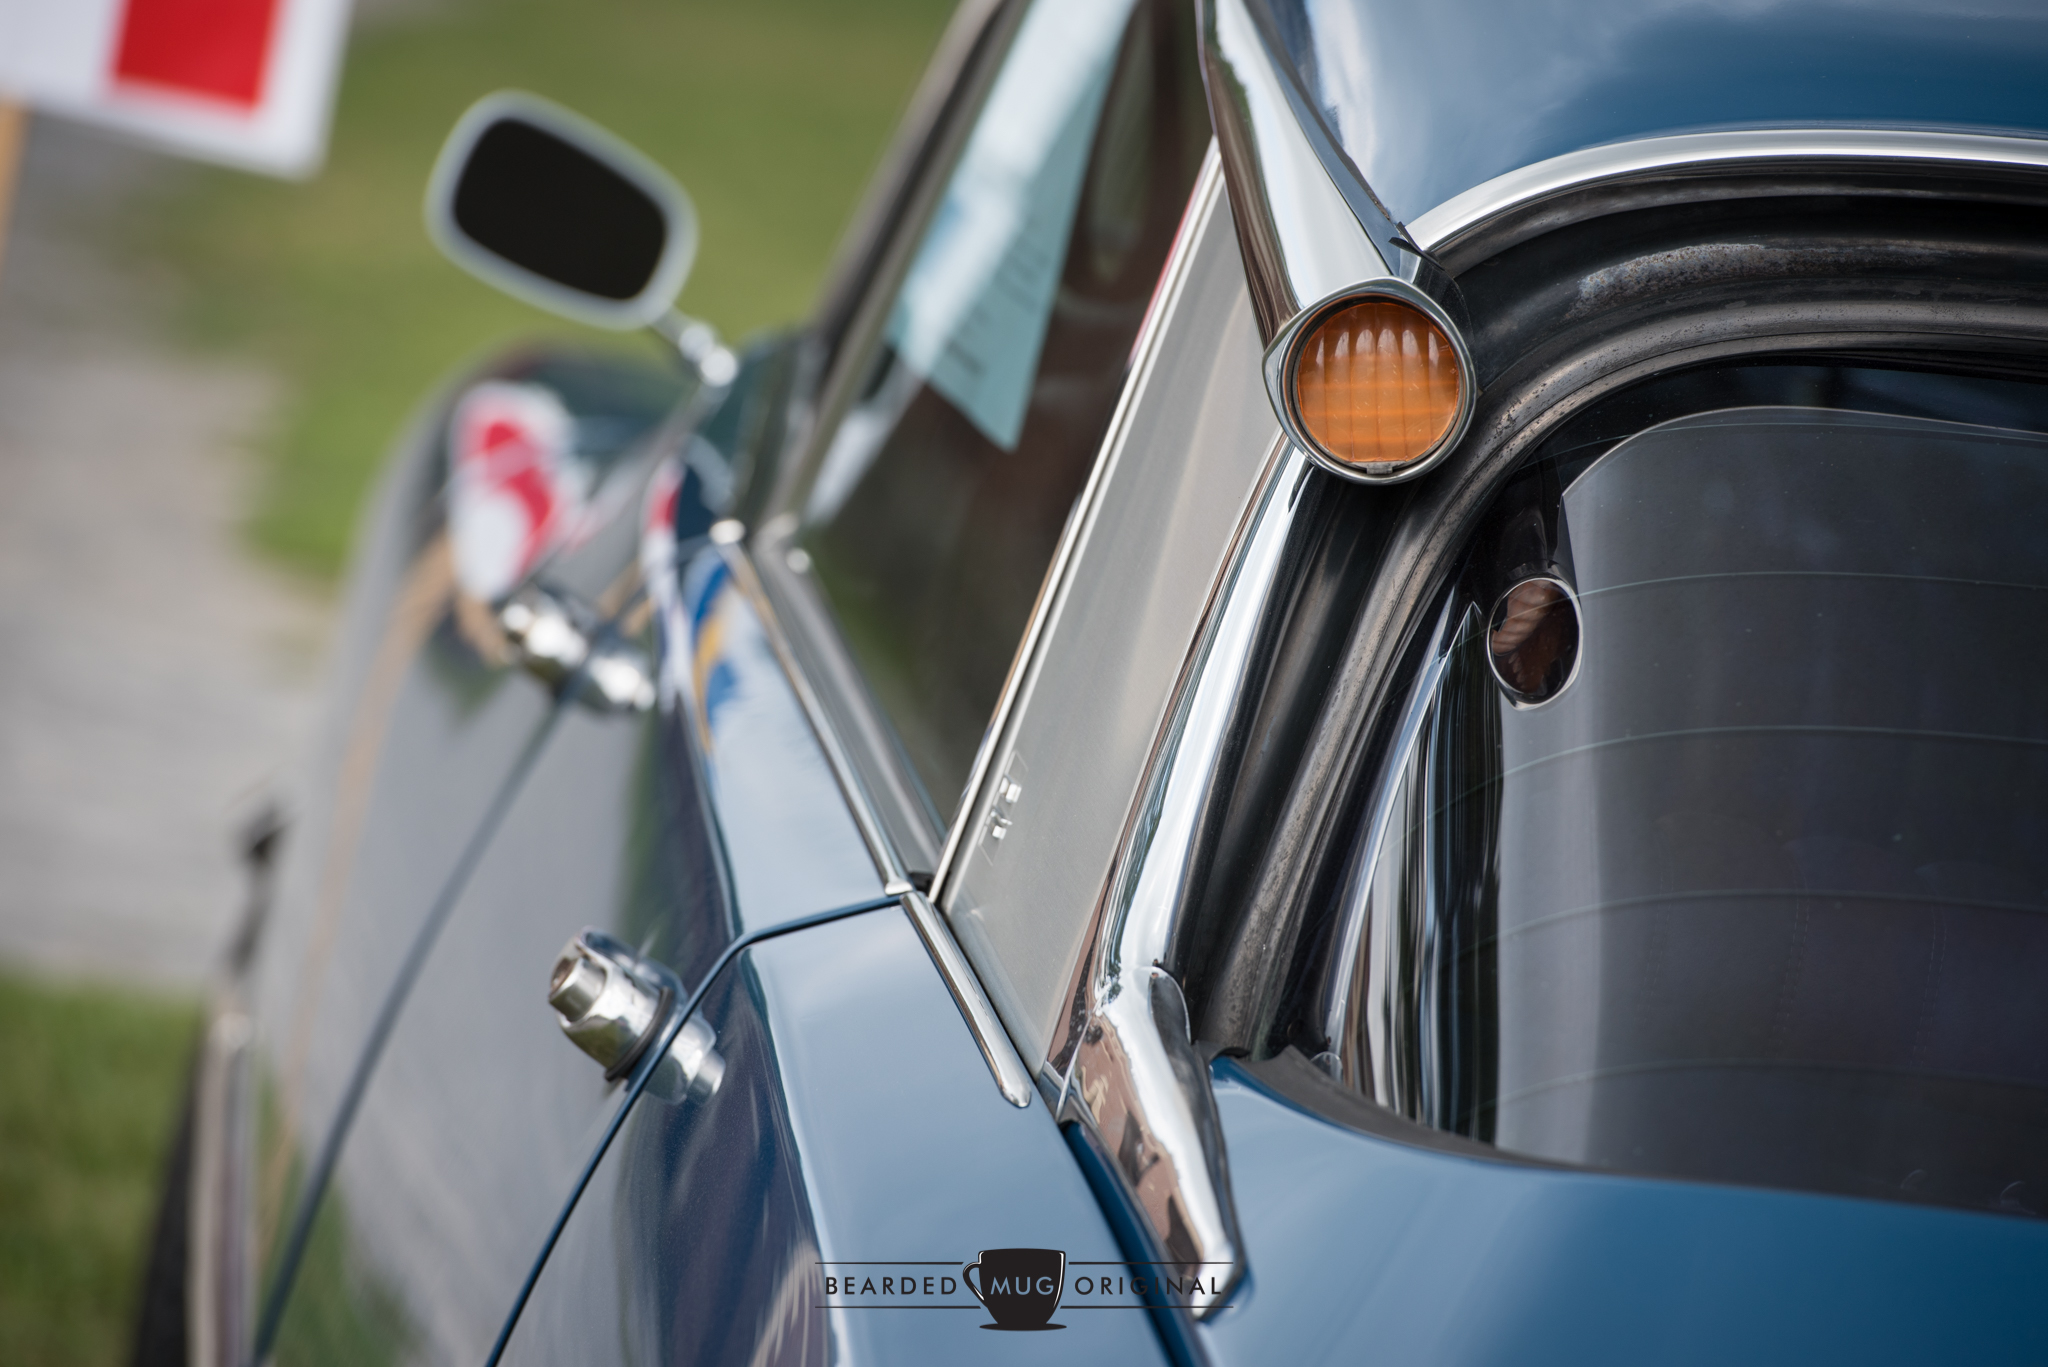 When it comes to details, there's no shortage of them on this 1969 Citroën DS21.